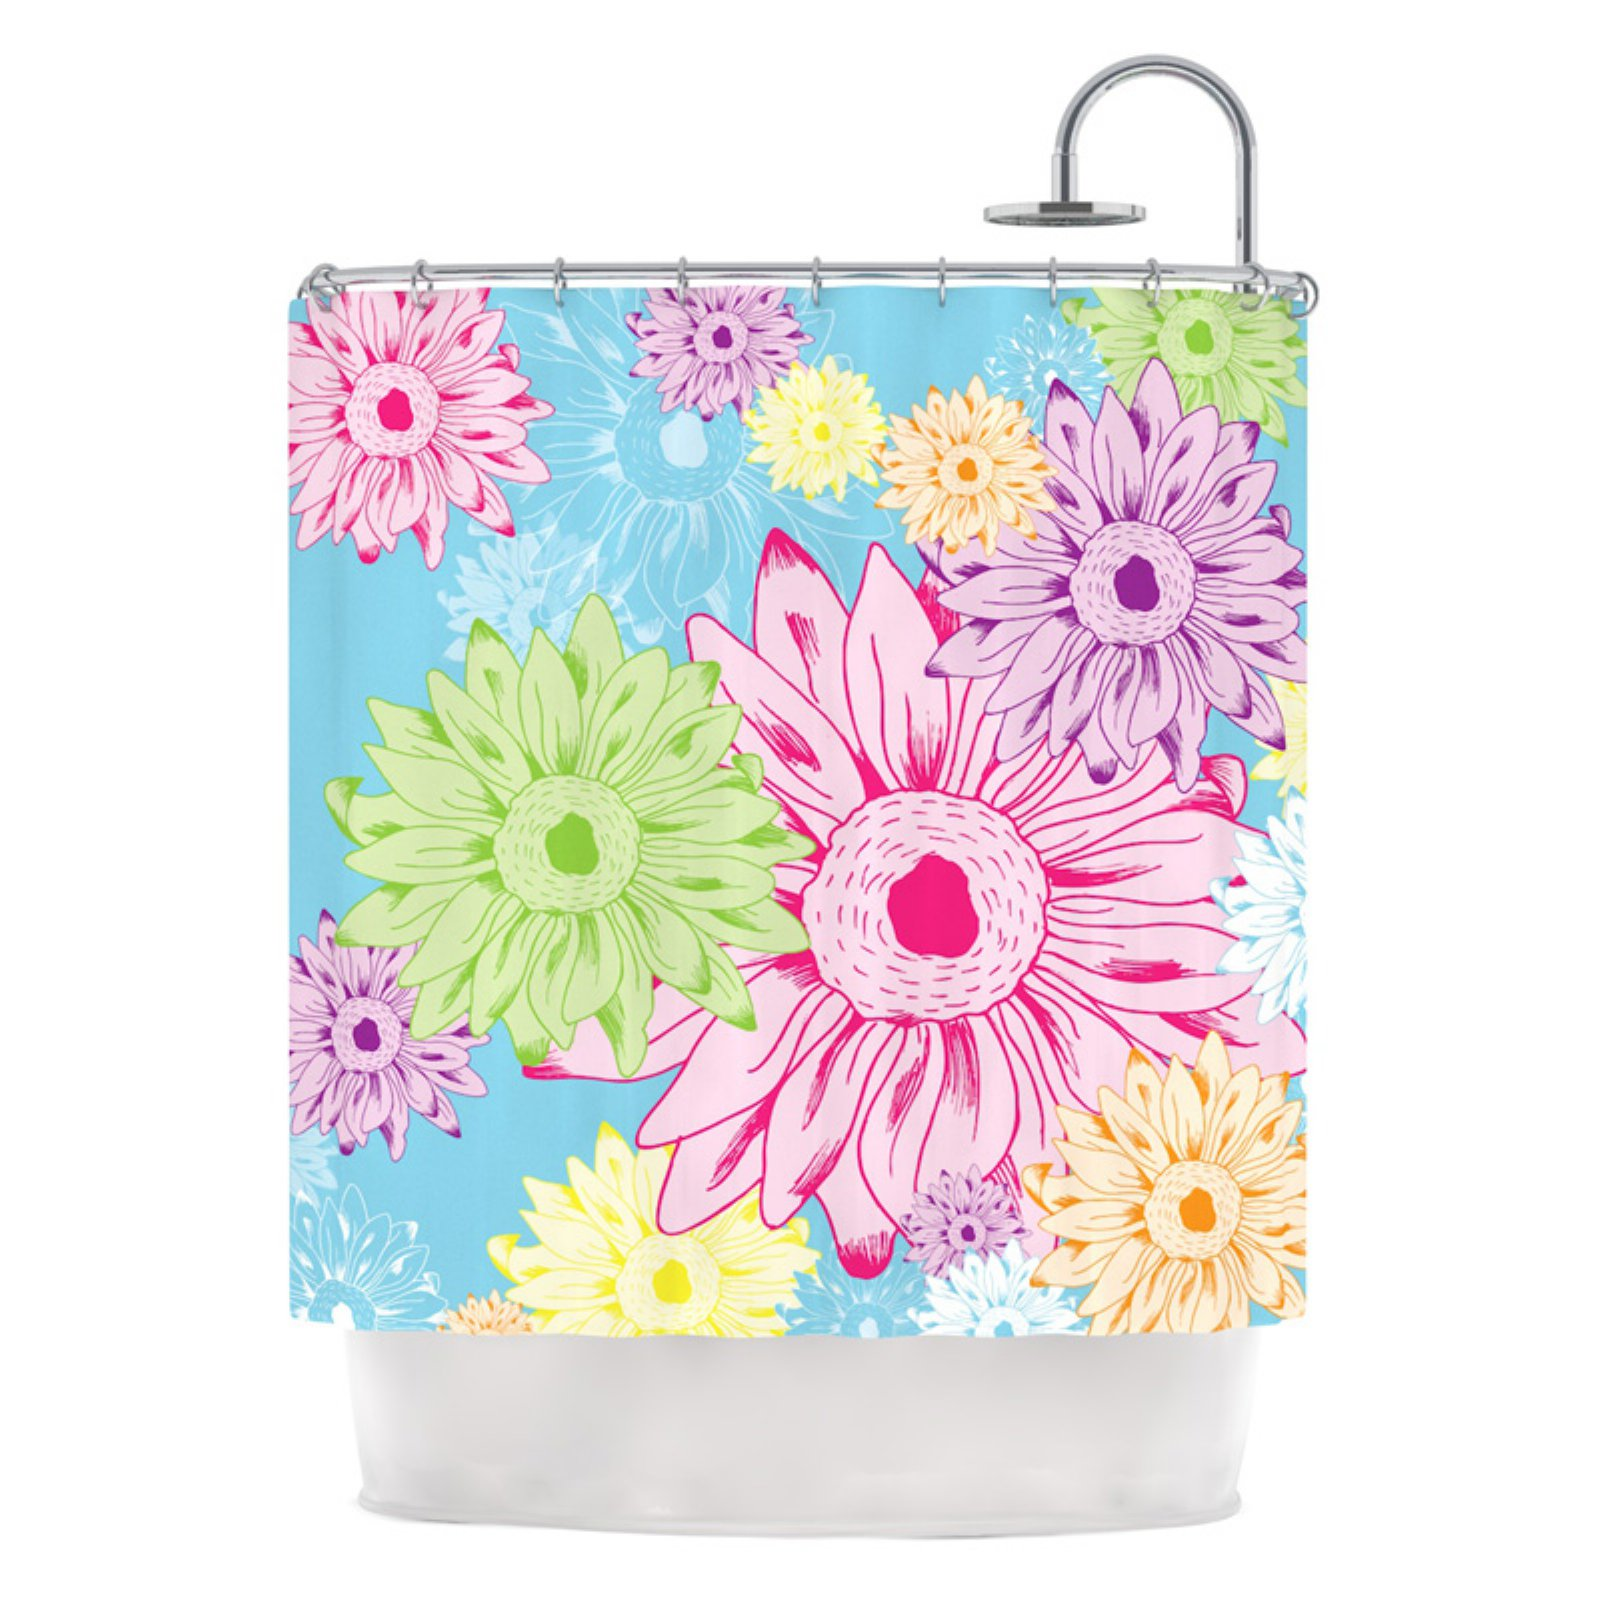 "Kess Inhouse Laura Escalante ""Summer Time"" Shower Curtain"